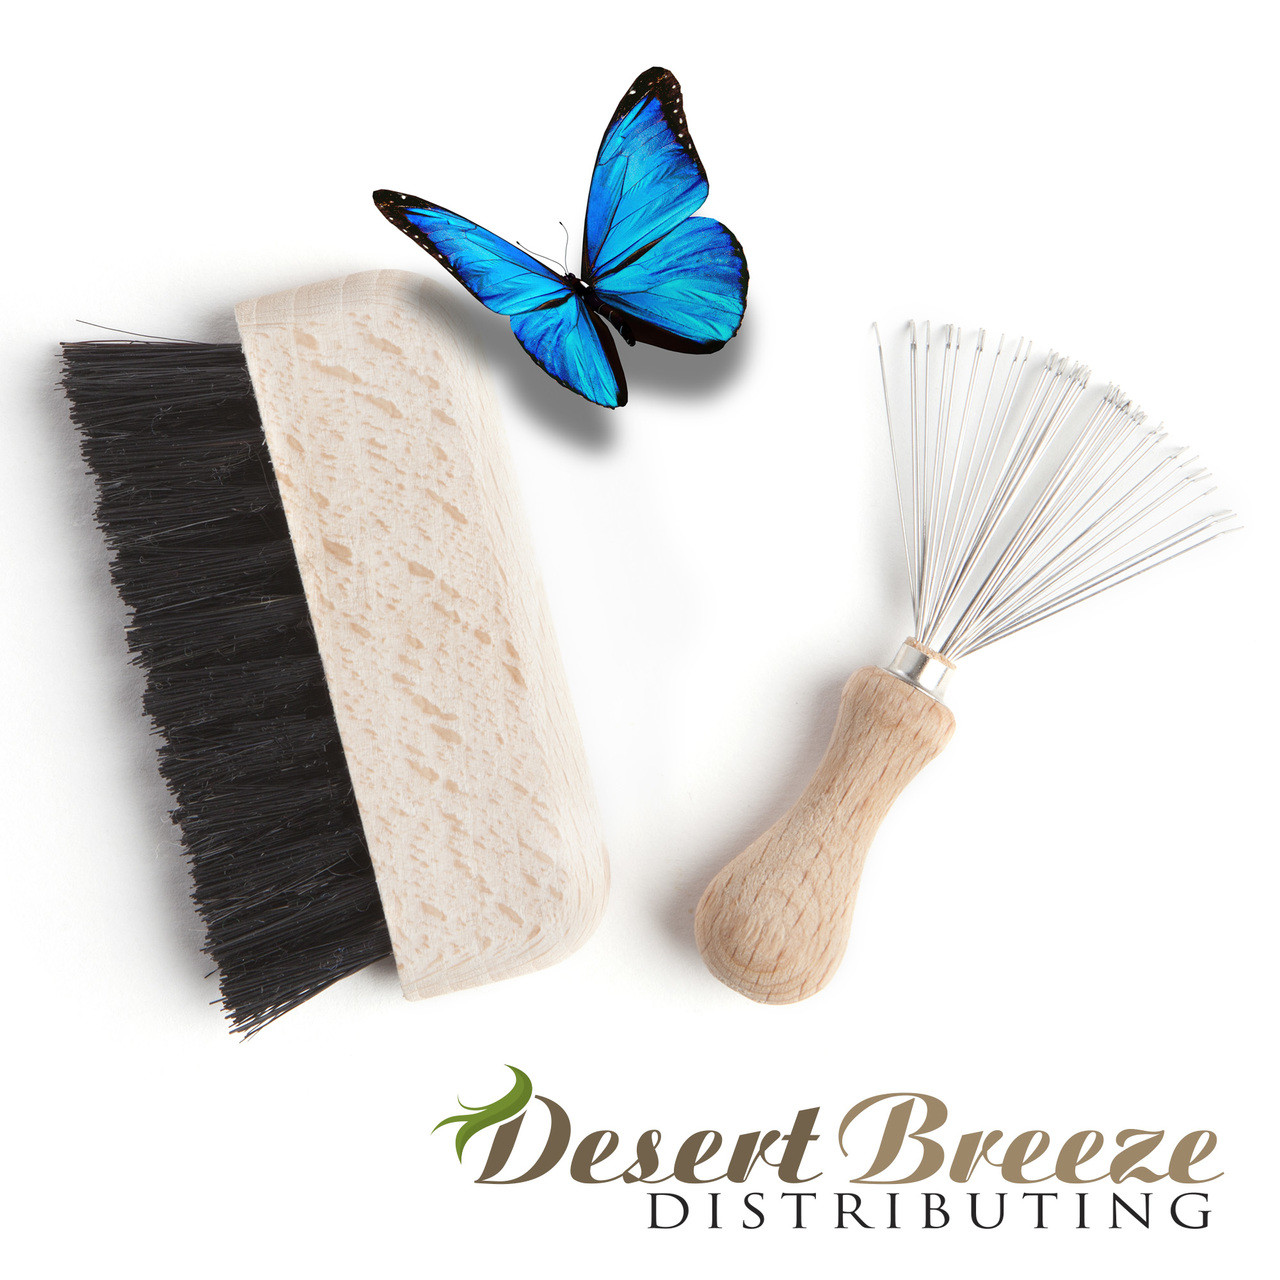 Hair brush and comb cleaning kit, by Desert Breeze Distributing, made in Germany